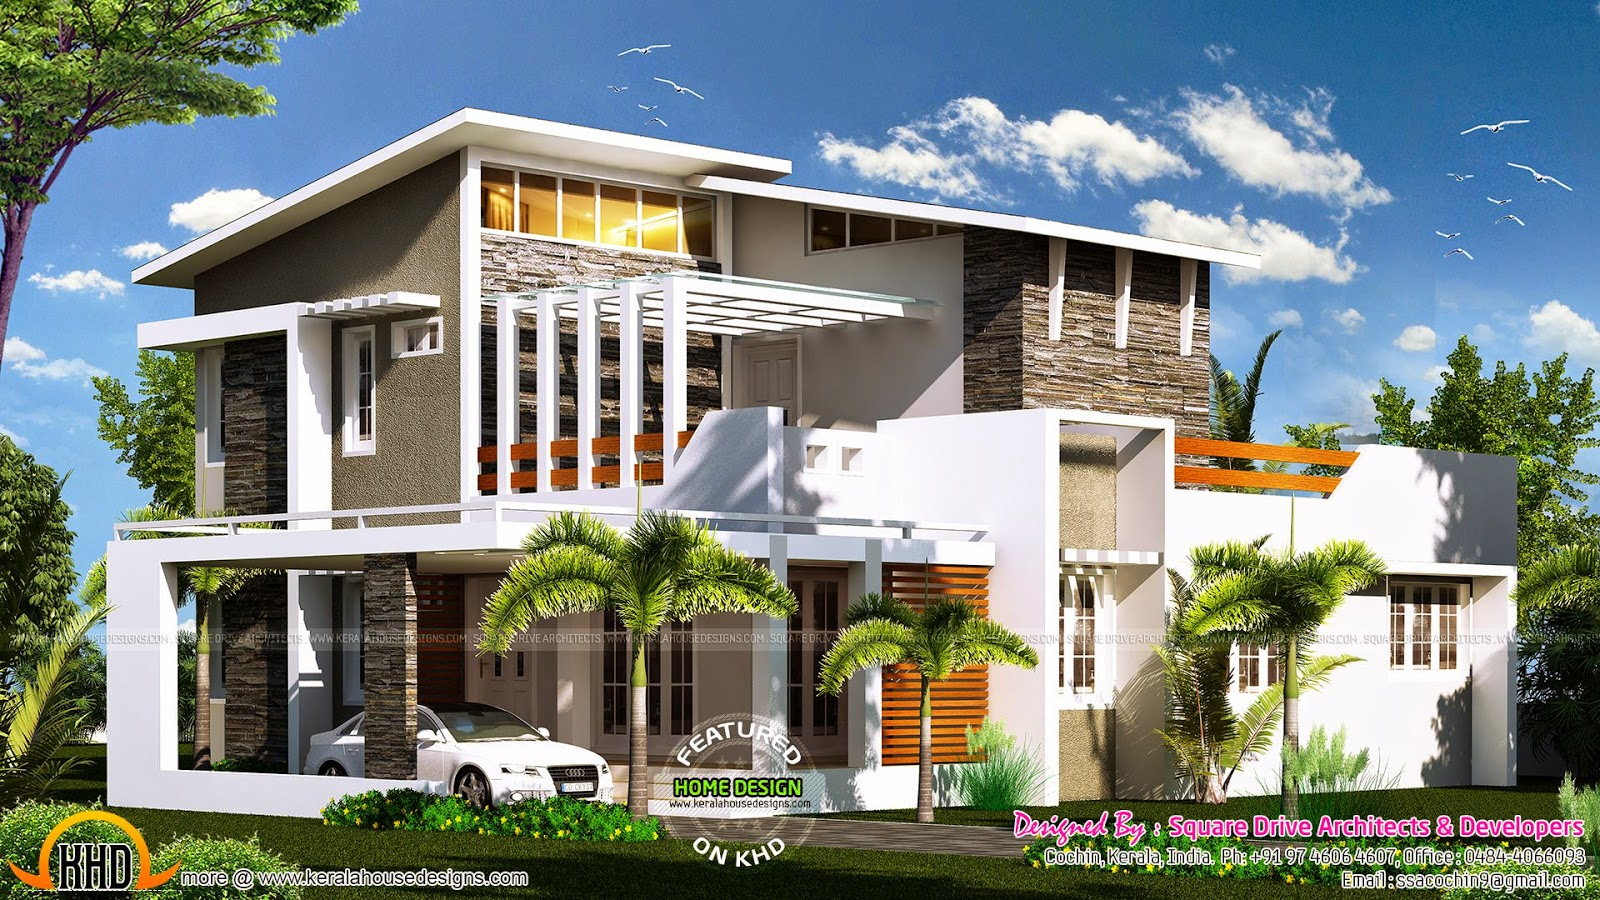 2000 sq ft modern contemporary house plan kerala home design and floor plans - New house design ...